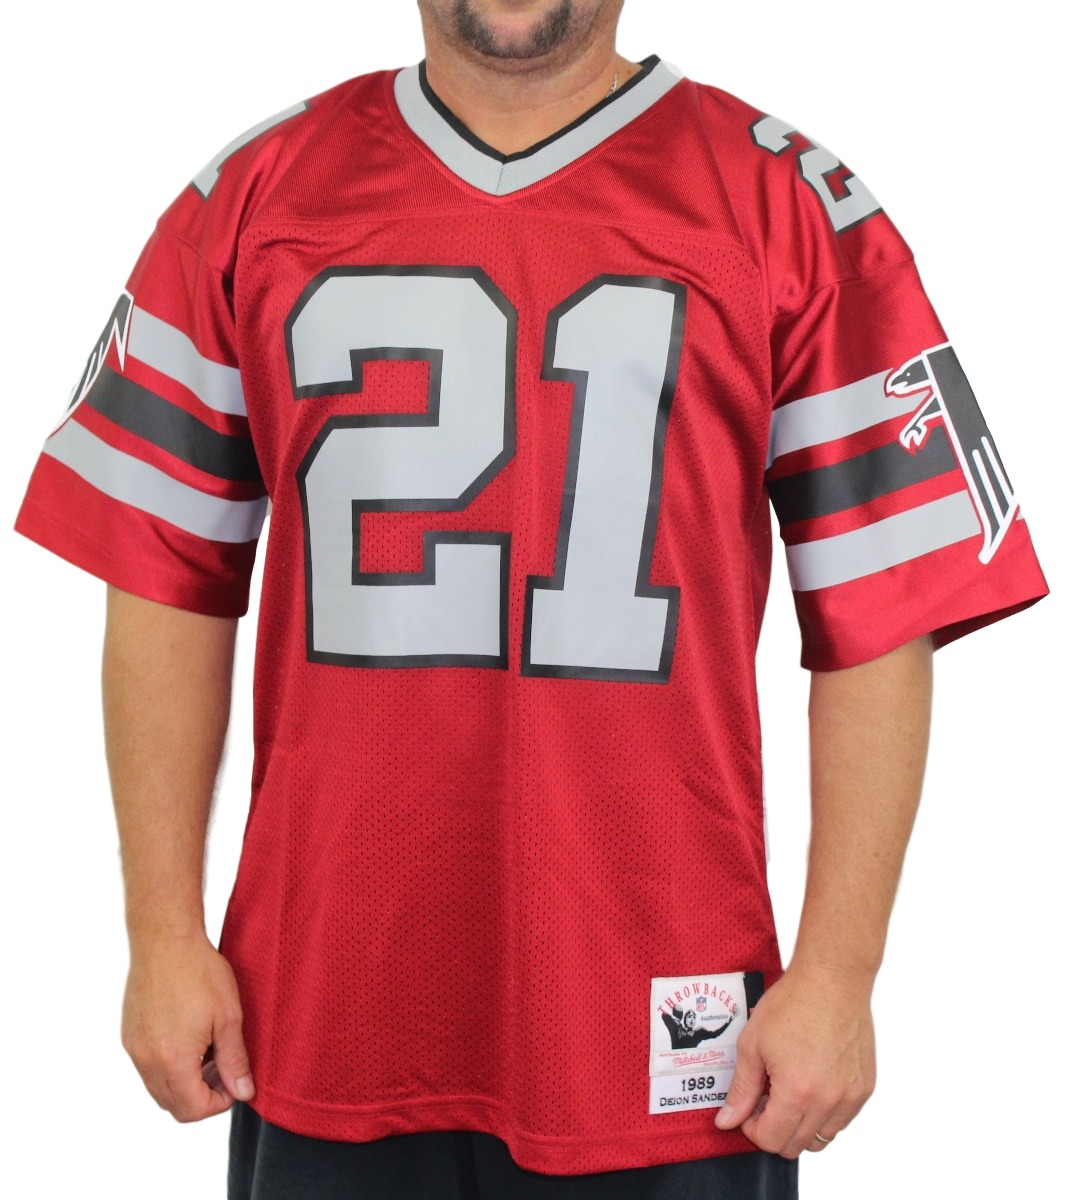 Deion Sanders Atlanta Falcons Mitchell & Ness Authentic 1989 Red NFL Jersey